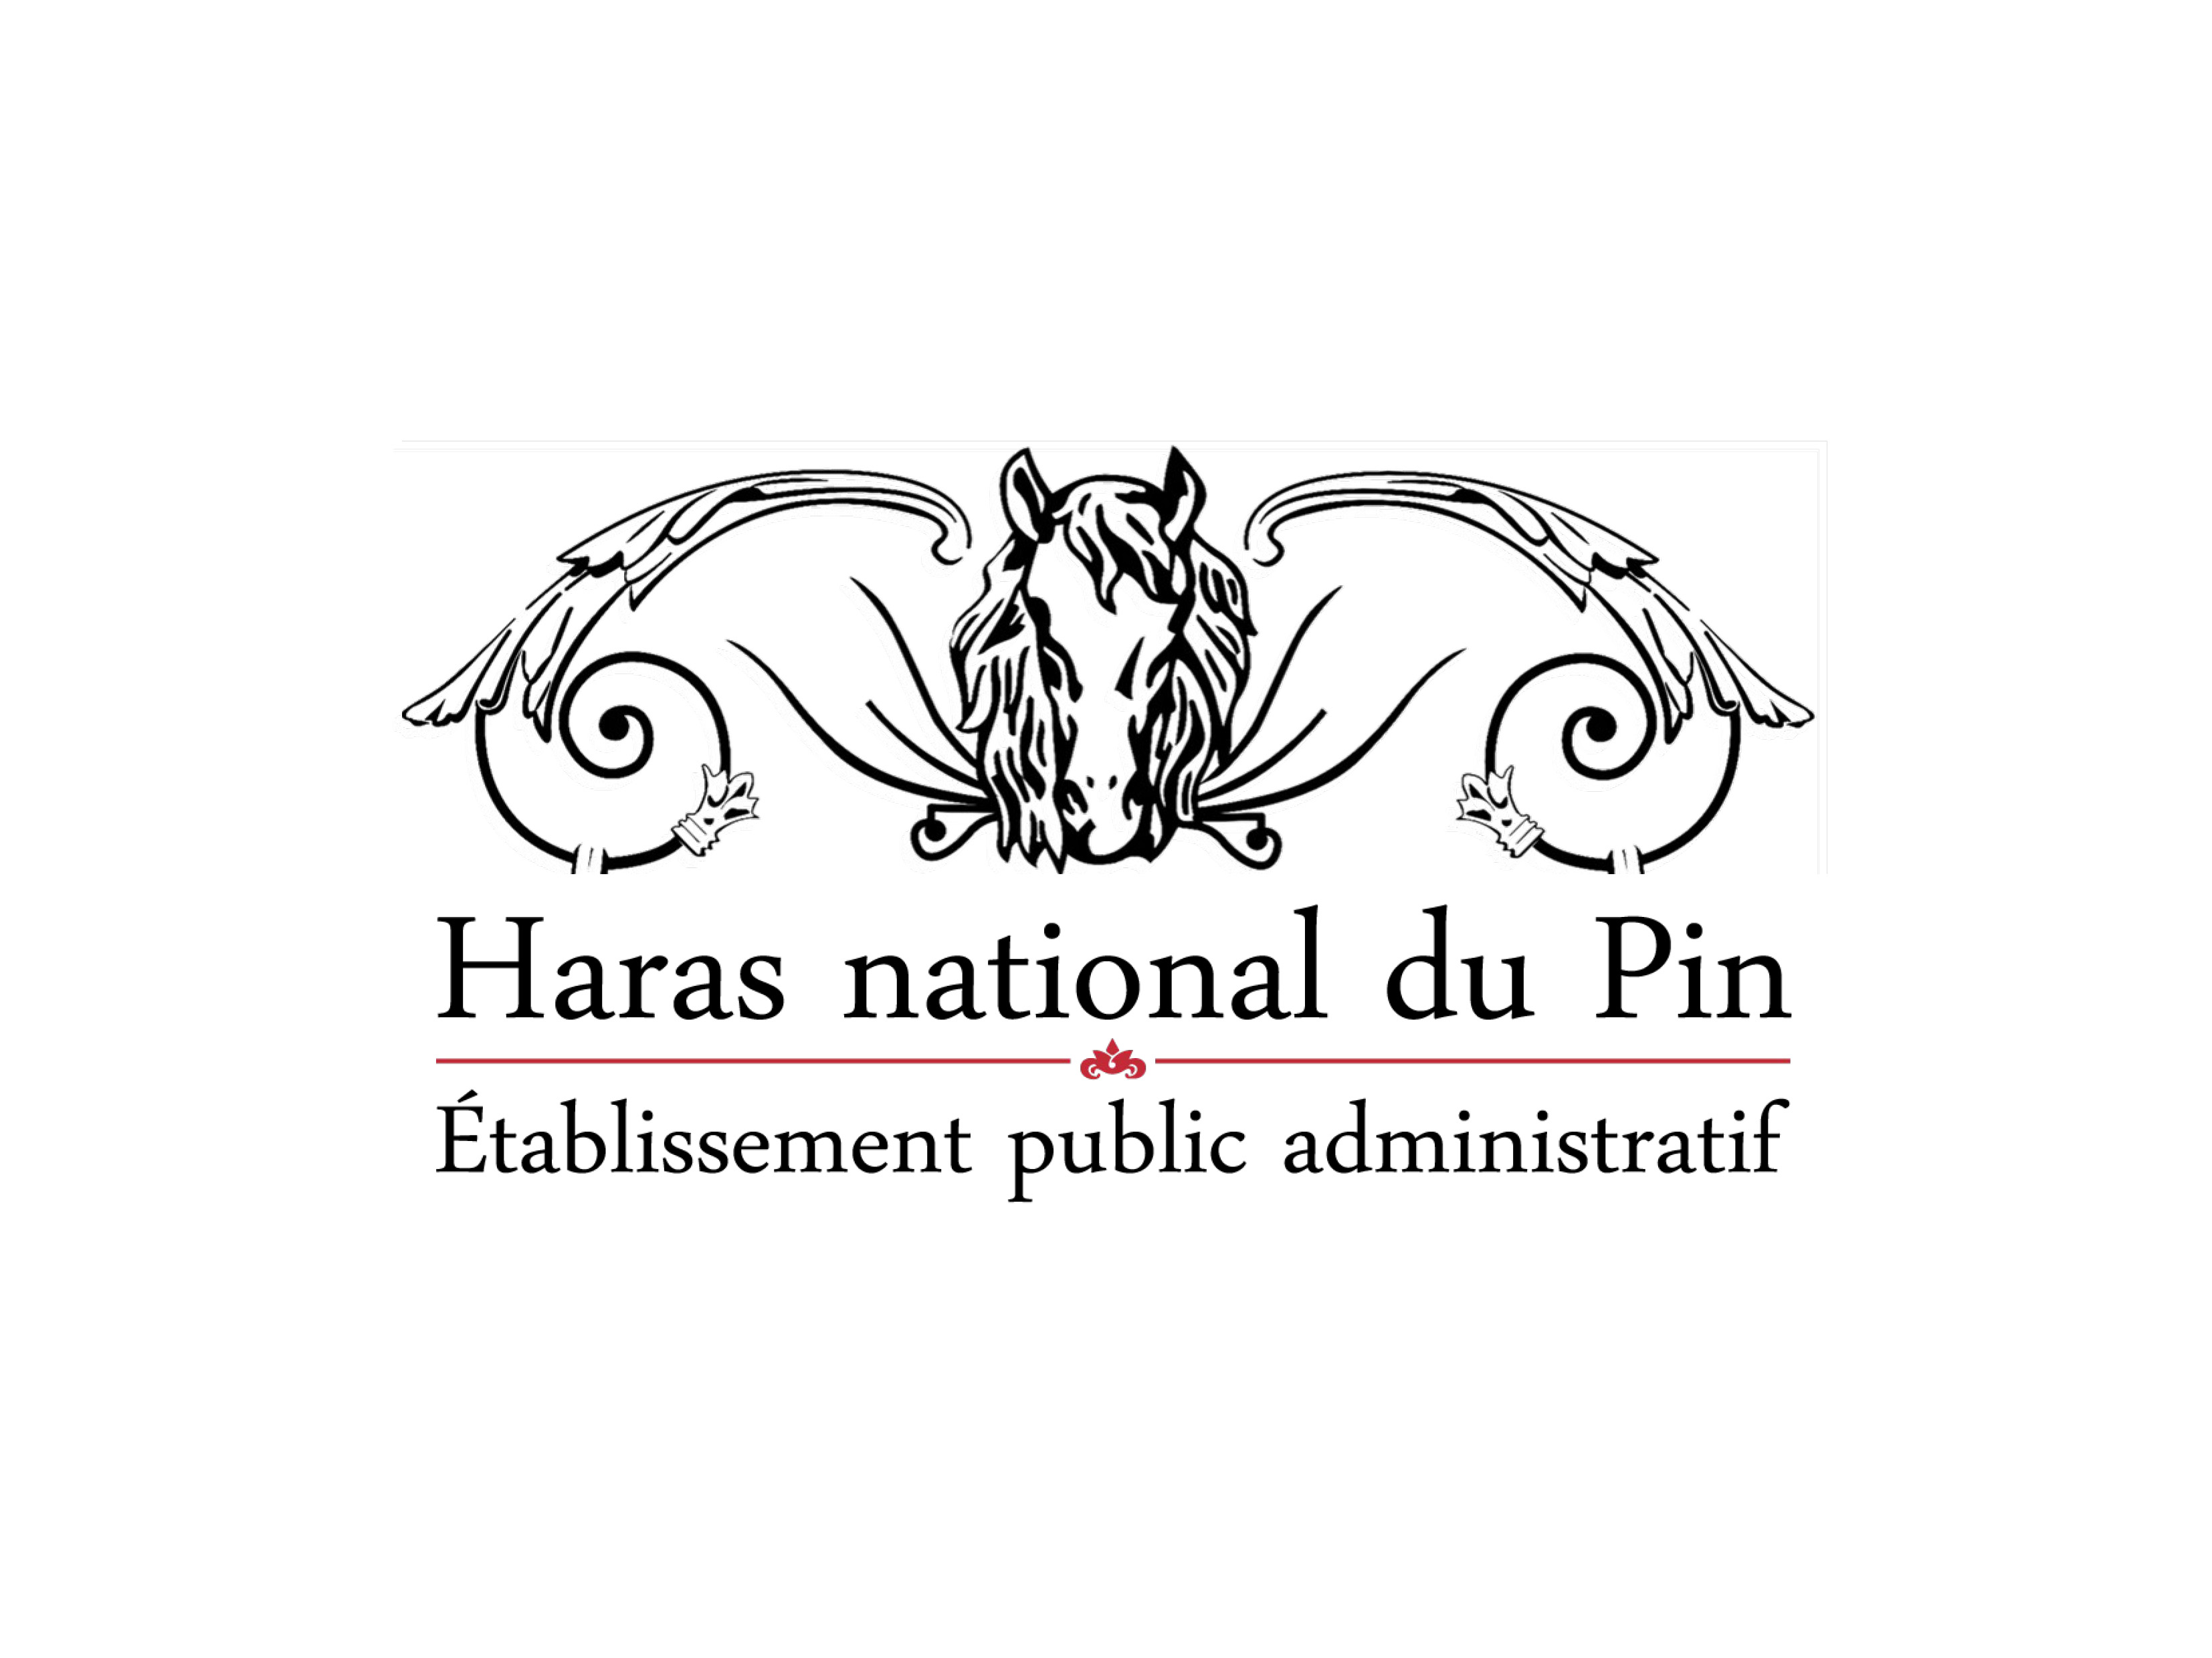 Le Haras National du Pin - Poney As